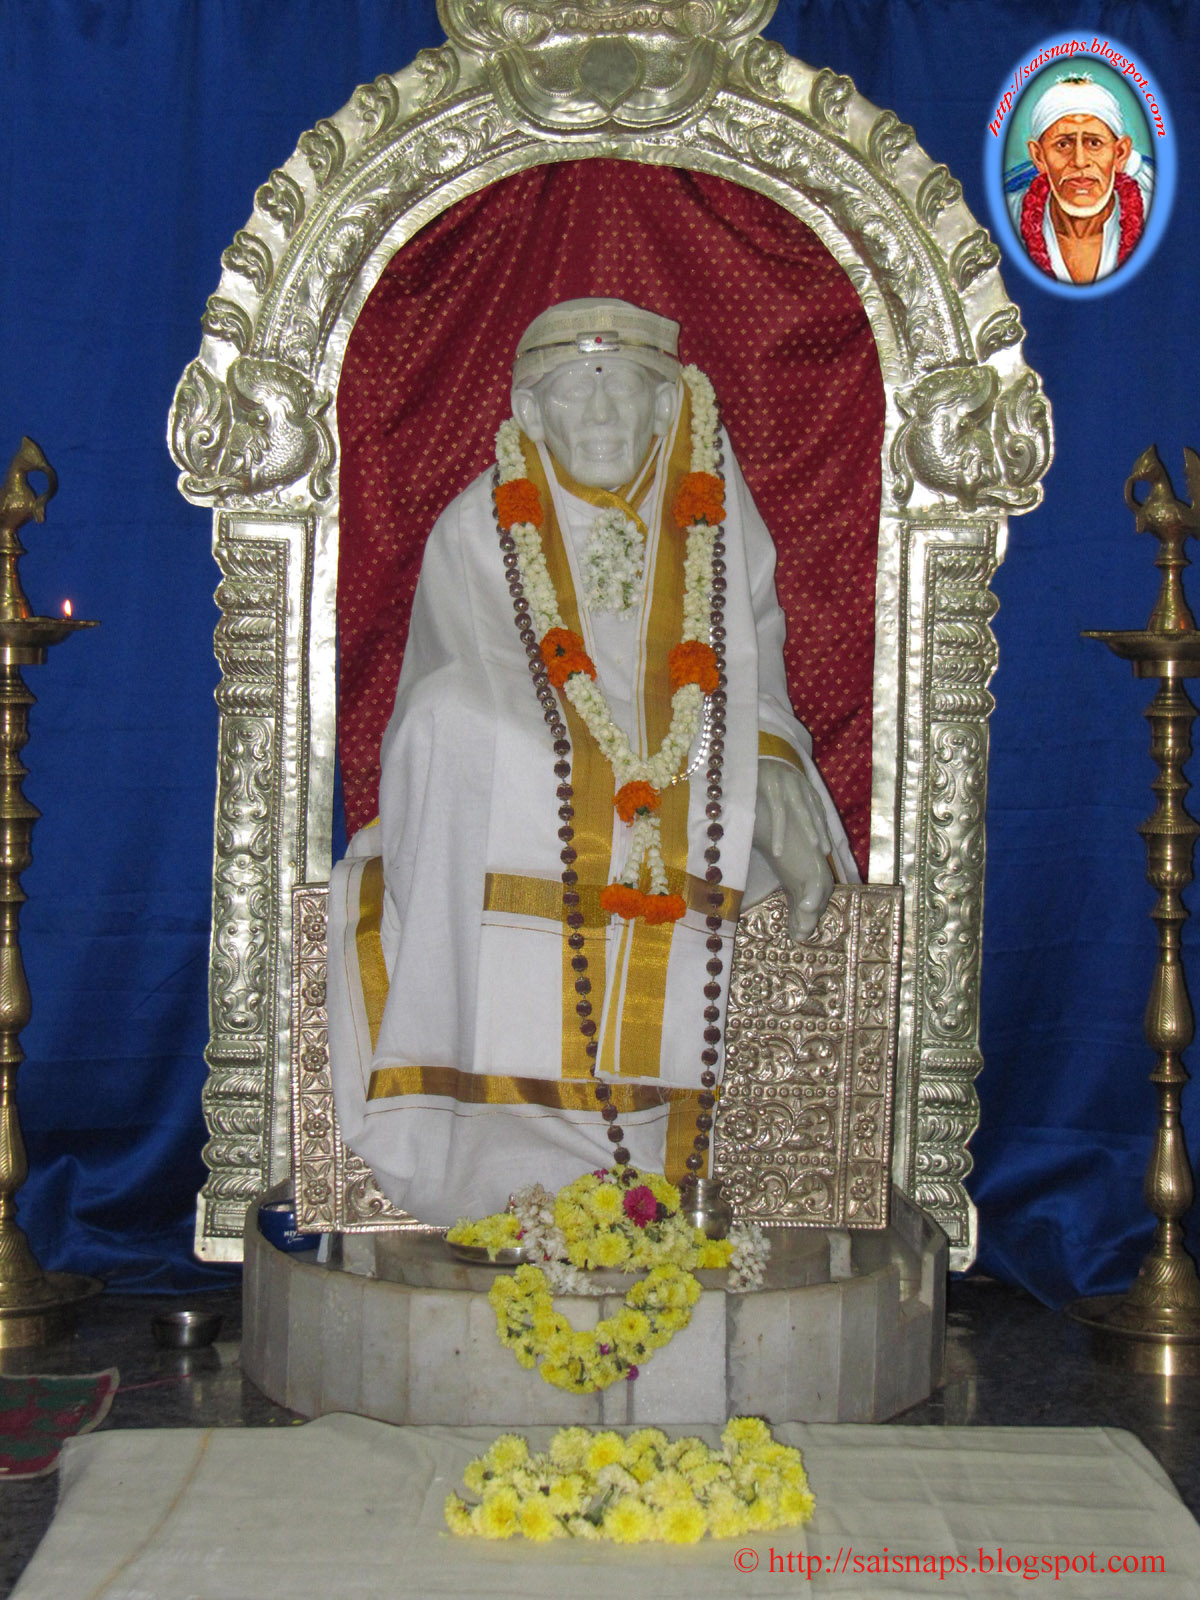 Sai Wallpaper Shirdi Sai Baba Mandira Mahalakshmi Layout